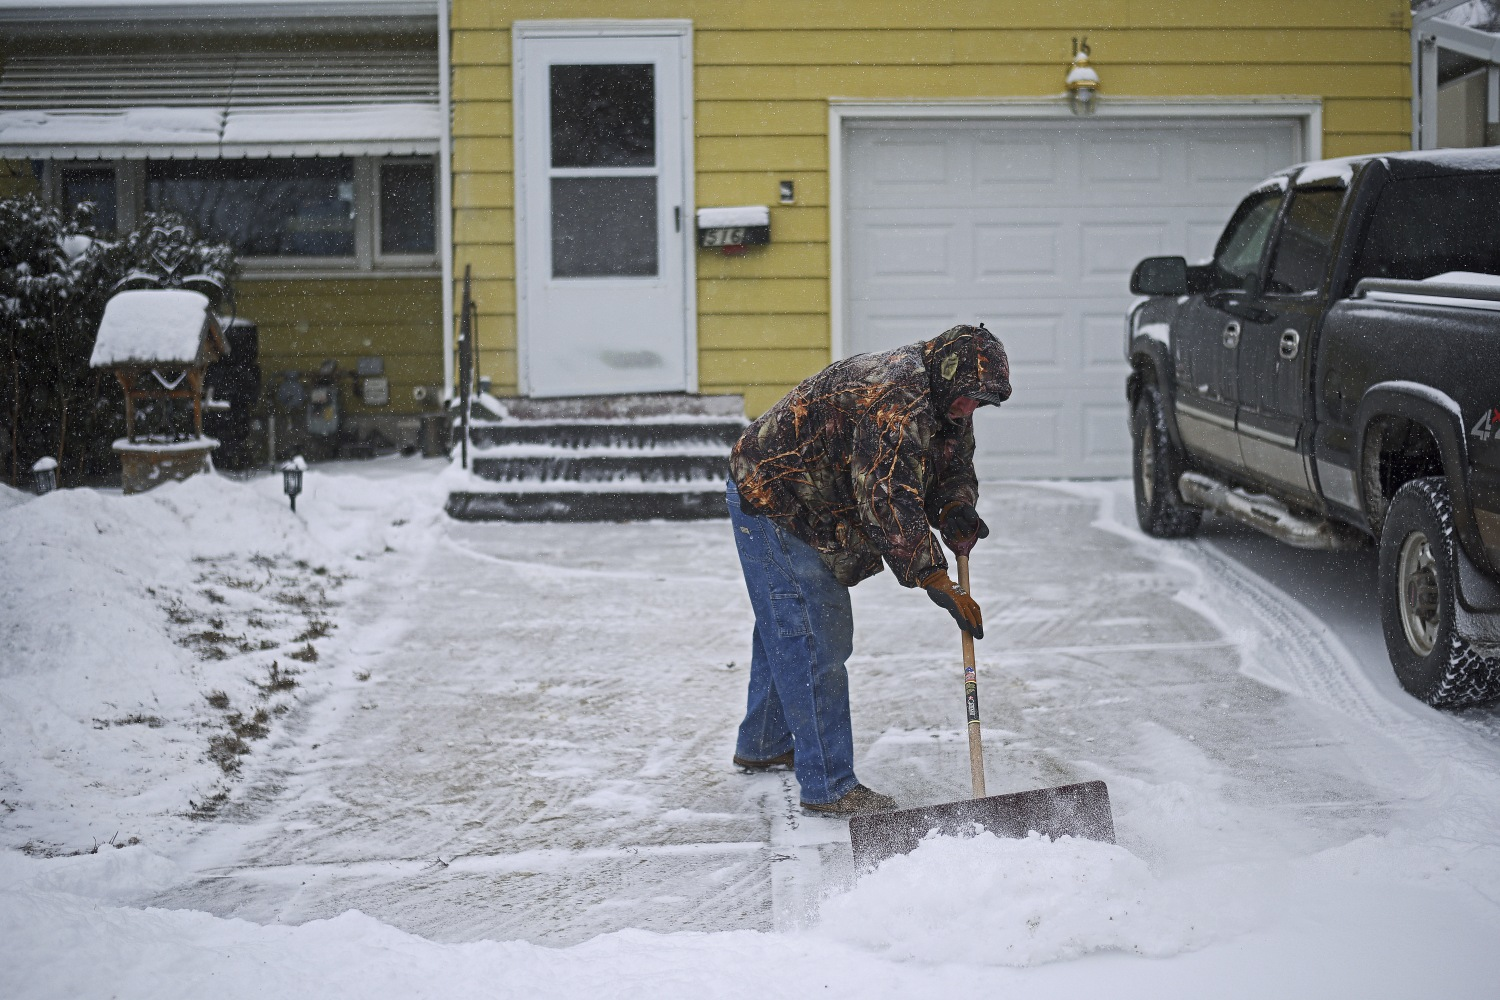 White Christmas: Storms Expected to Leave Holiday Blanket of Snow ...